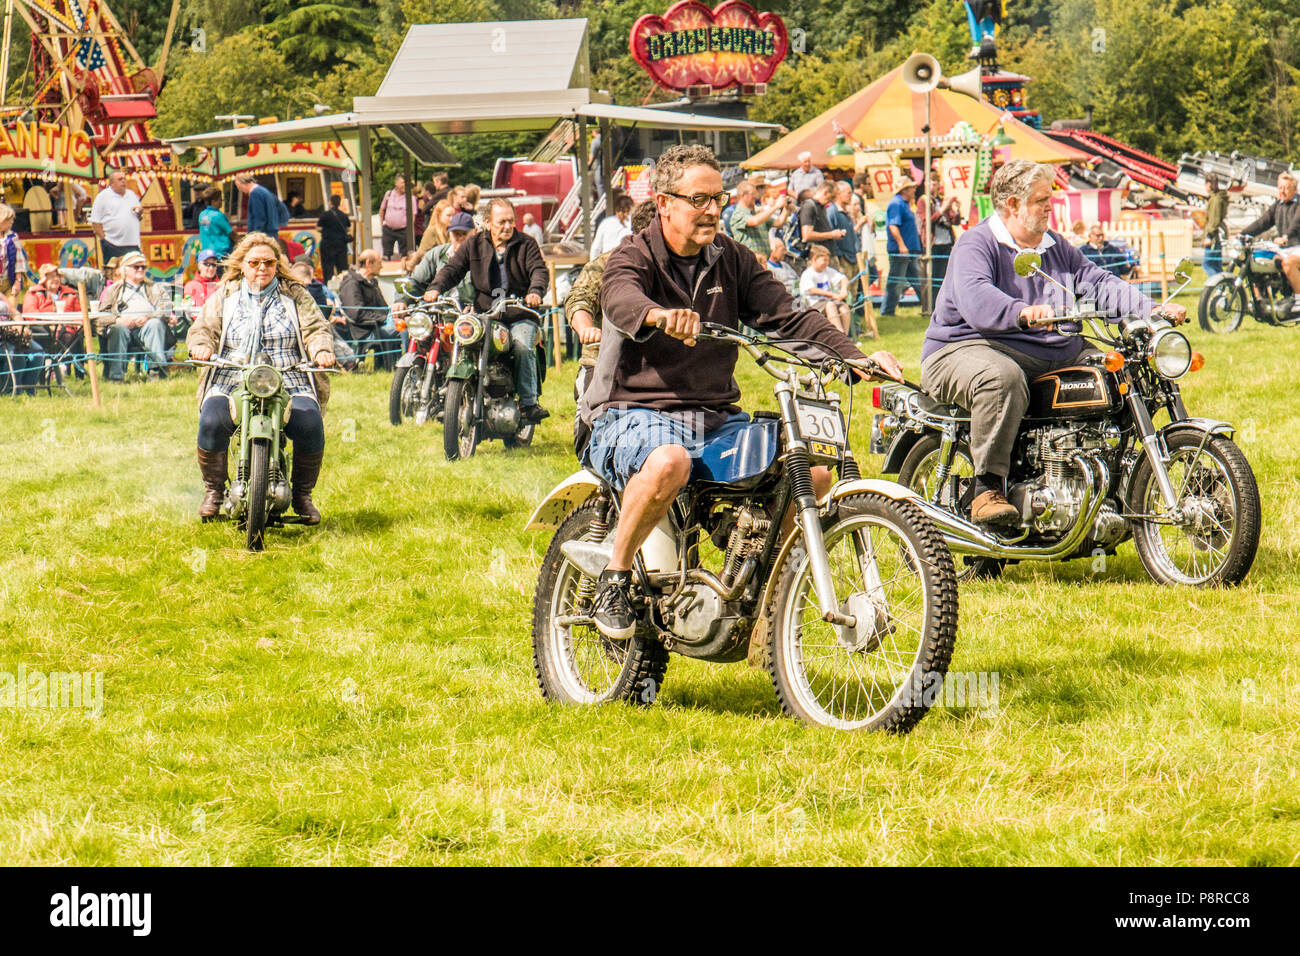 Old Motorcycles on display at Chelford steam rally Cheshire United Kingdom - Stock Image